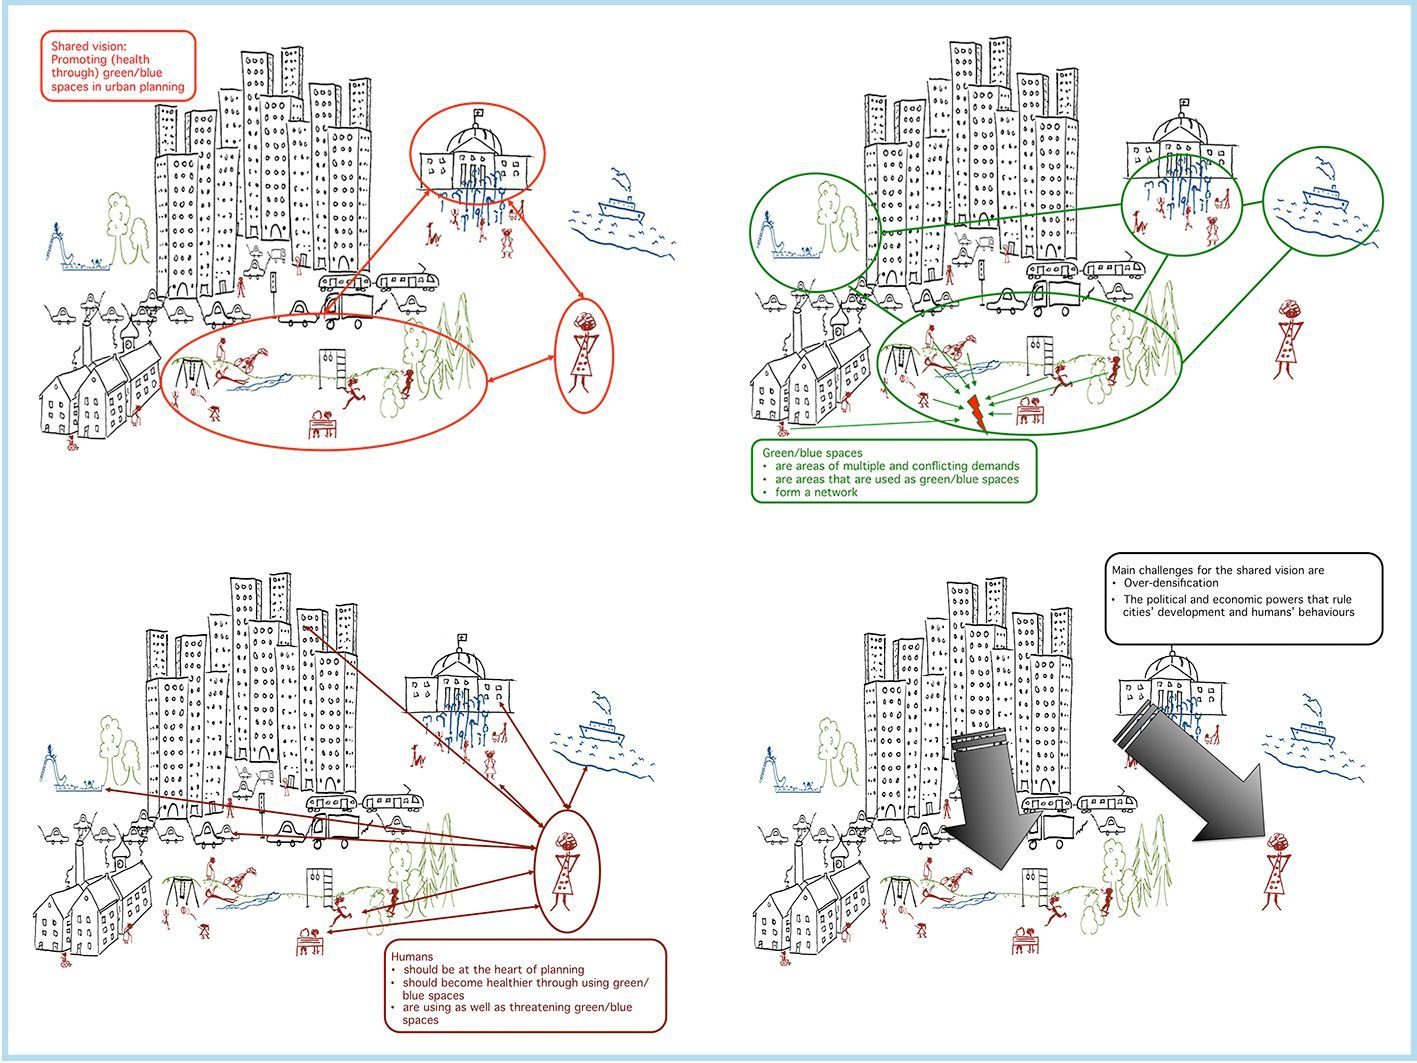 "Figure 1: Rich picture of ""Promoting (health through) green/blue spaces in urban planning"" drawn by the moderator and based on the board members' rich pictures. In red is the shared vision we started with. The other coloured systems and statements summarize insights stressed by the board members when explaining their individual rich picture to the group."